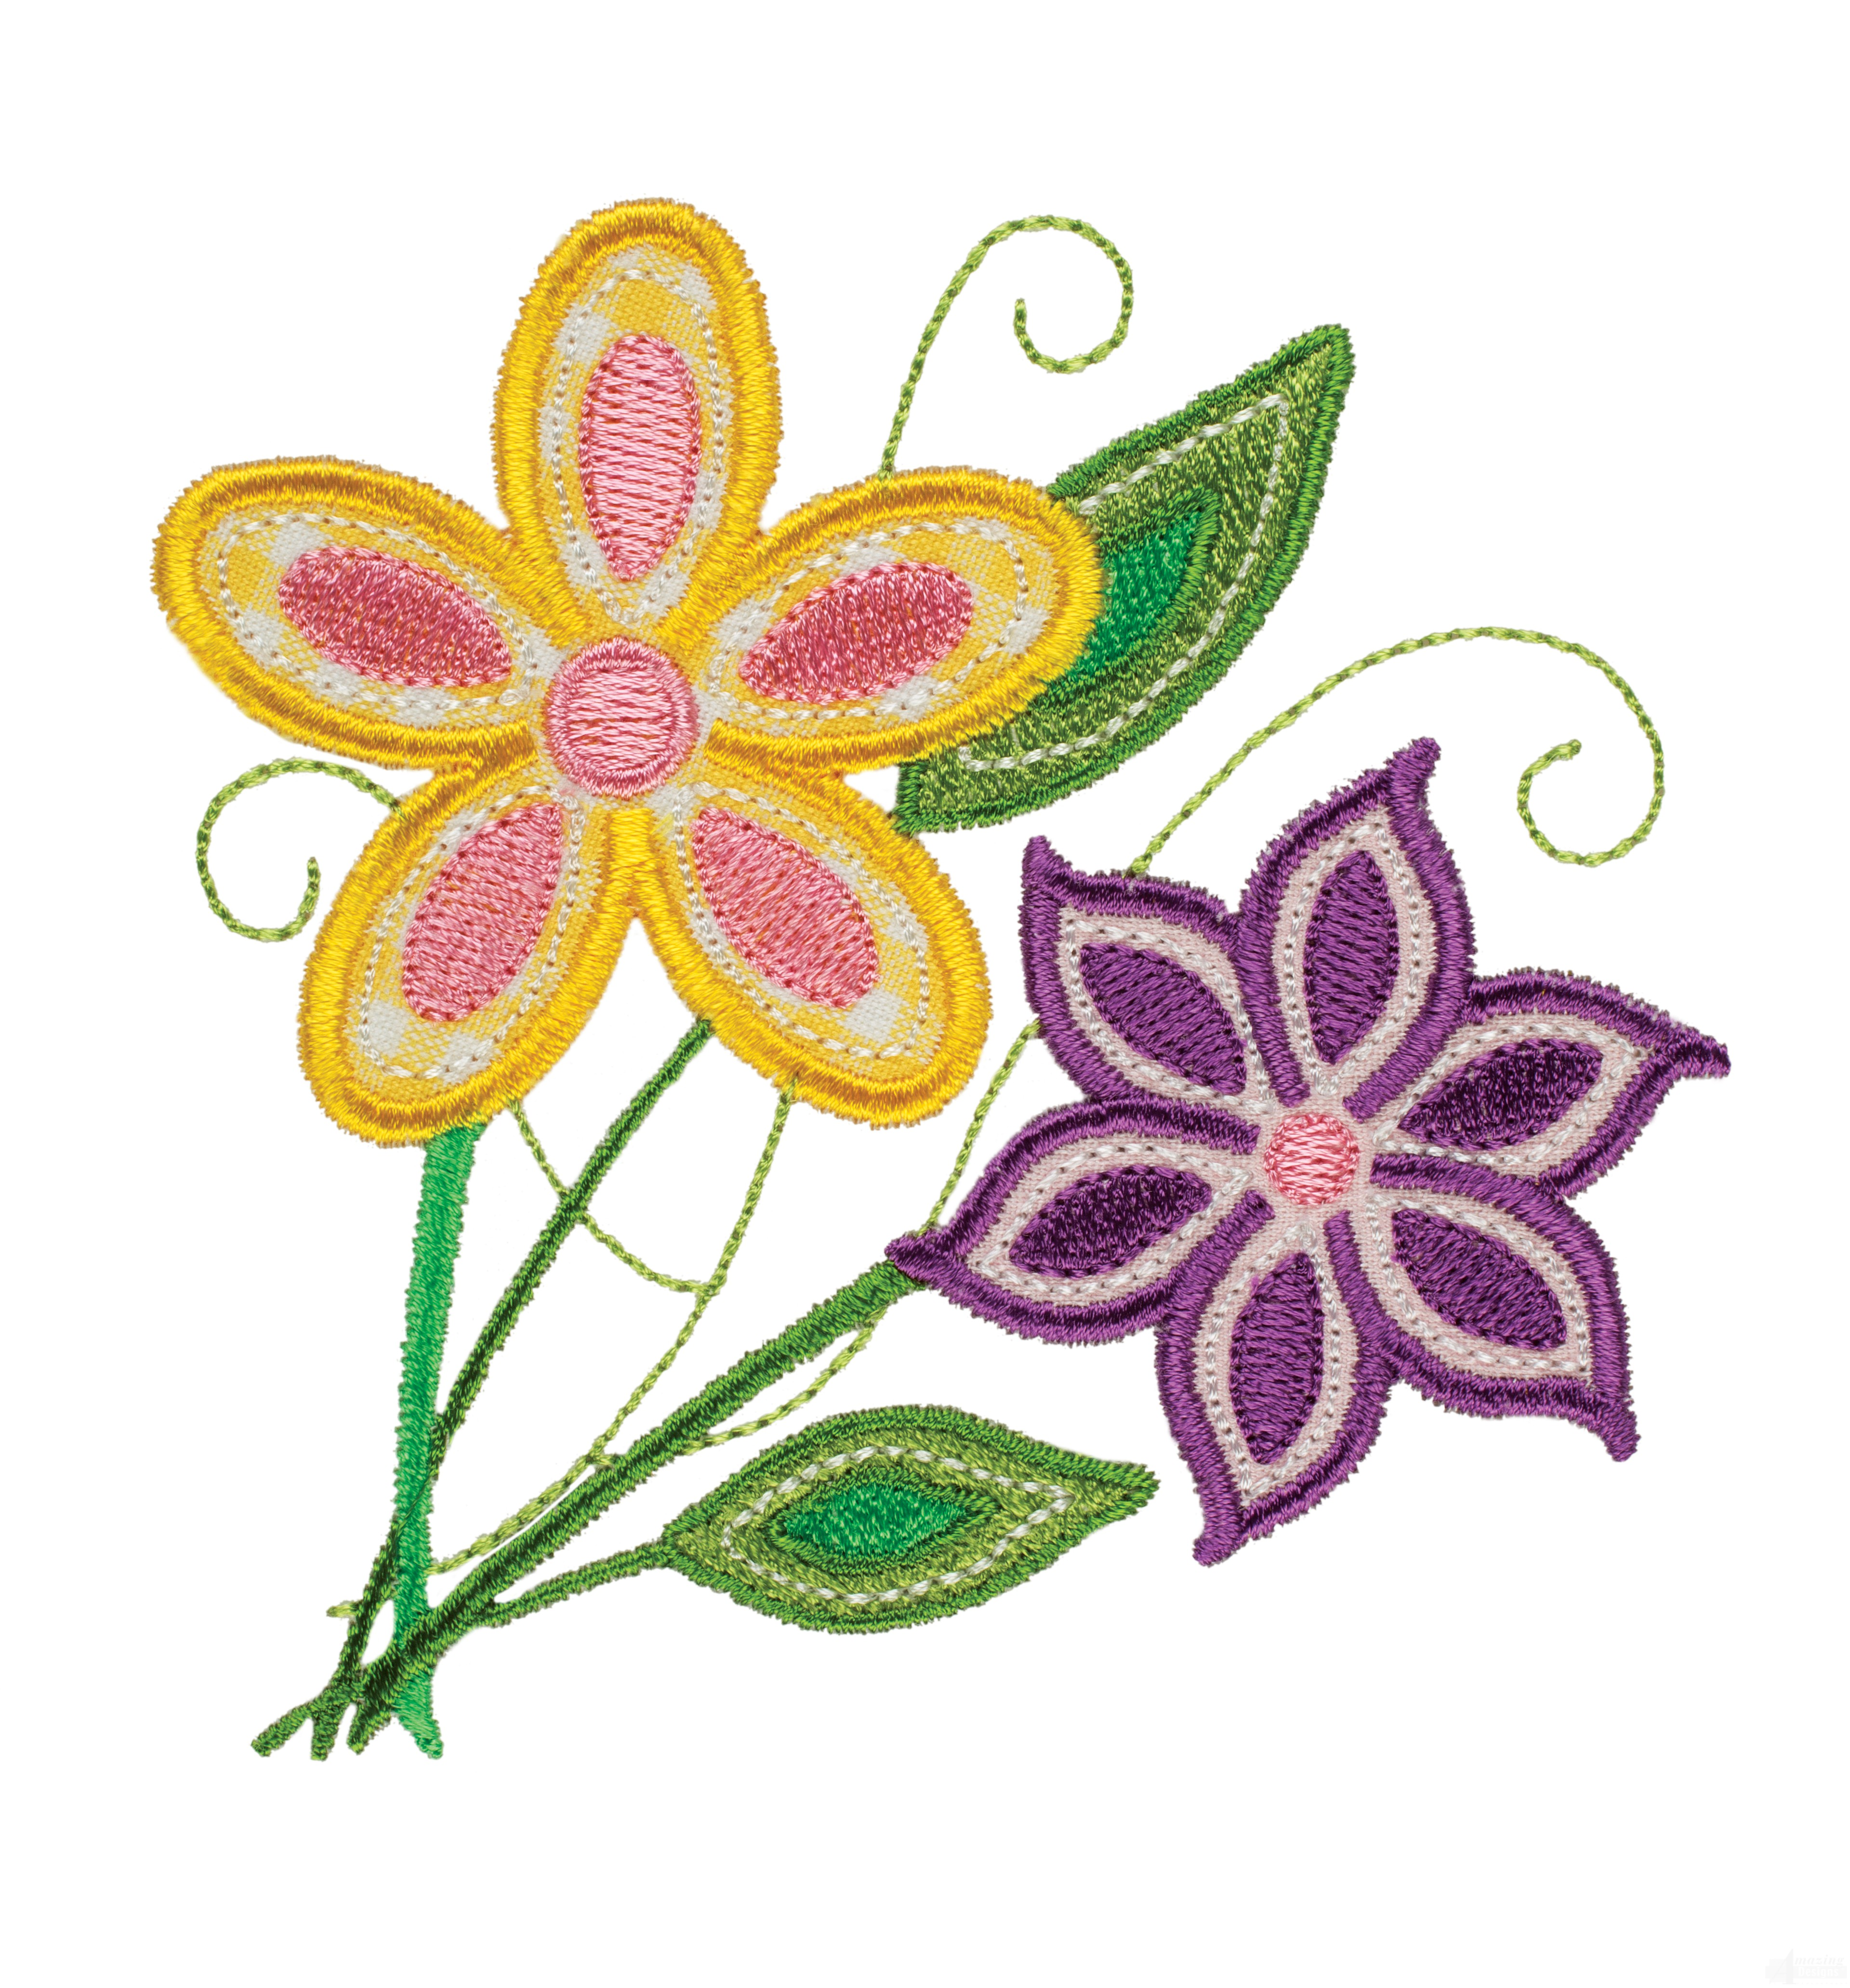 Flower group happy day applique embroidery design